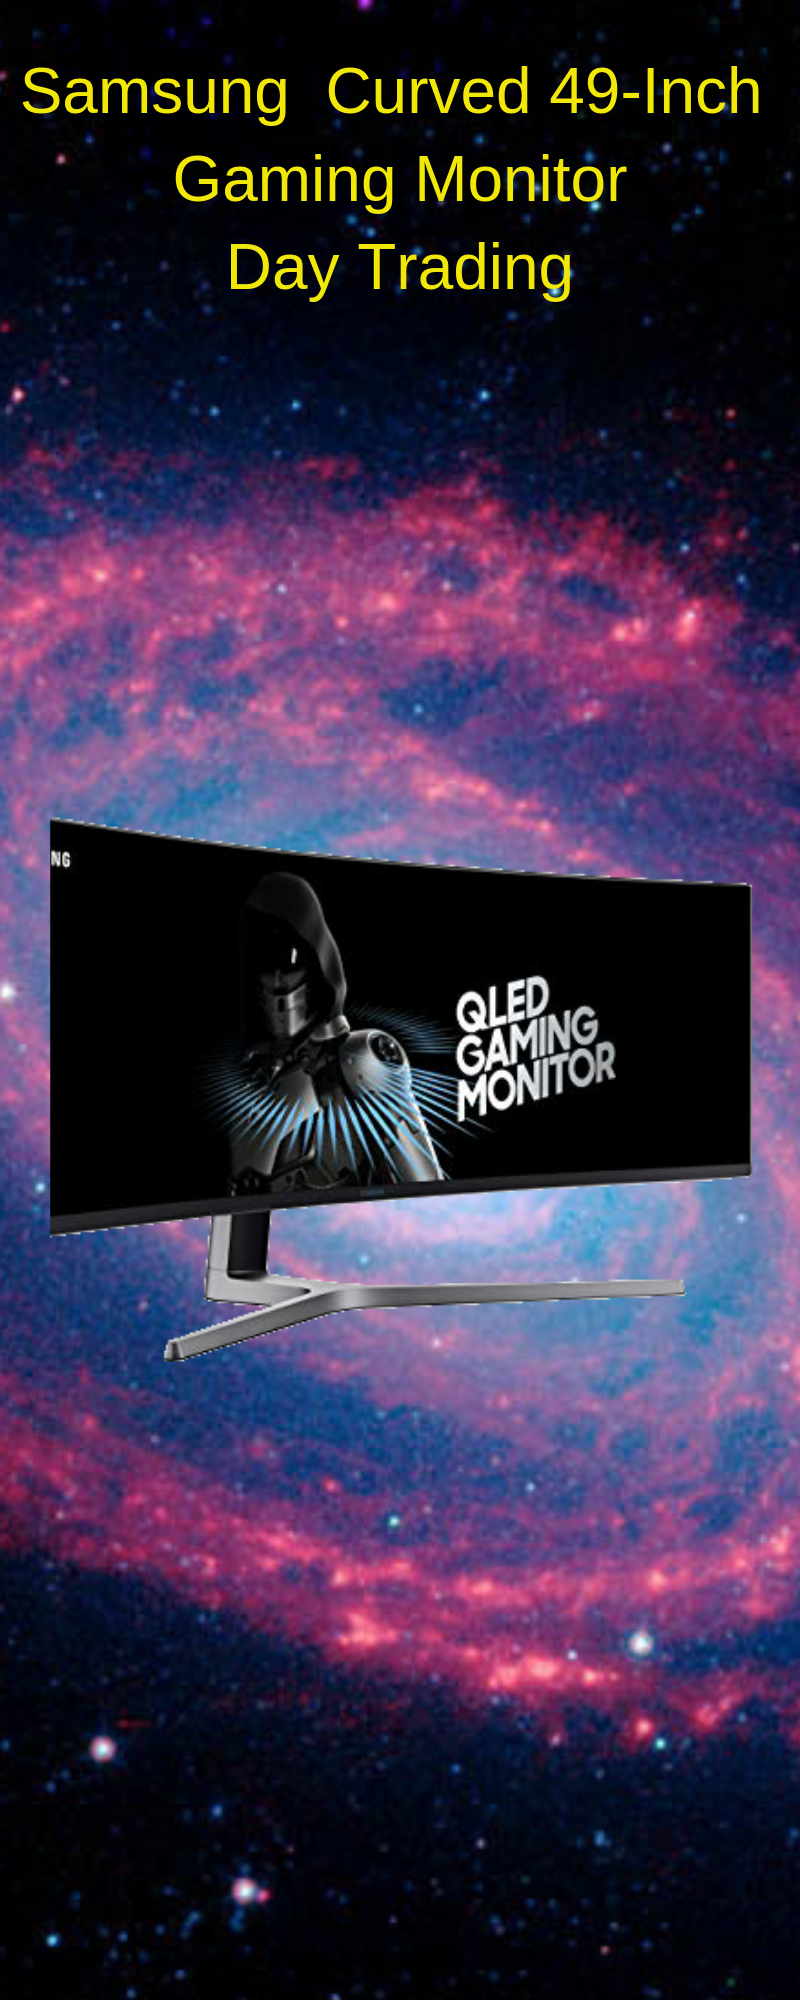 SAMSUNG Curved 49-Inch Computer Gaming Monitor - Day Trading Samsung